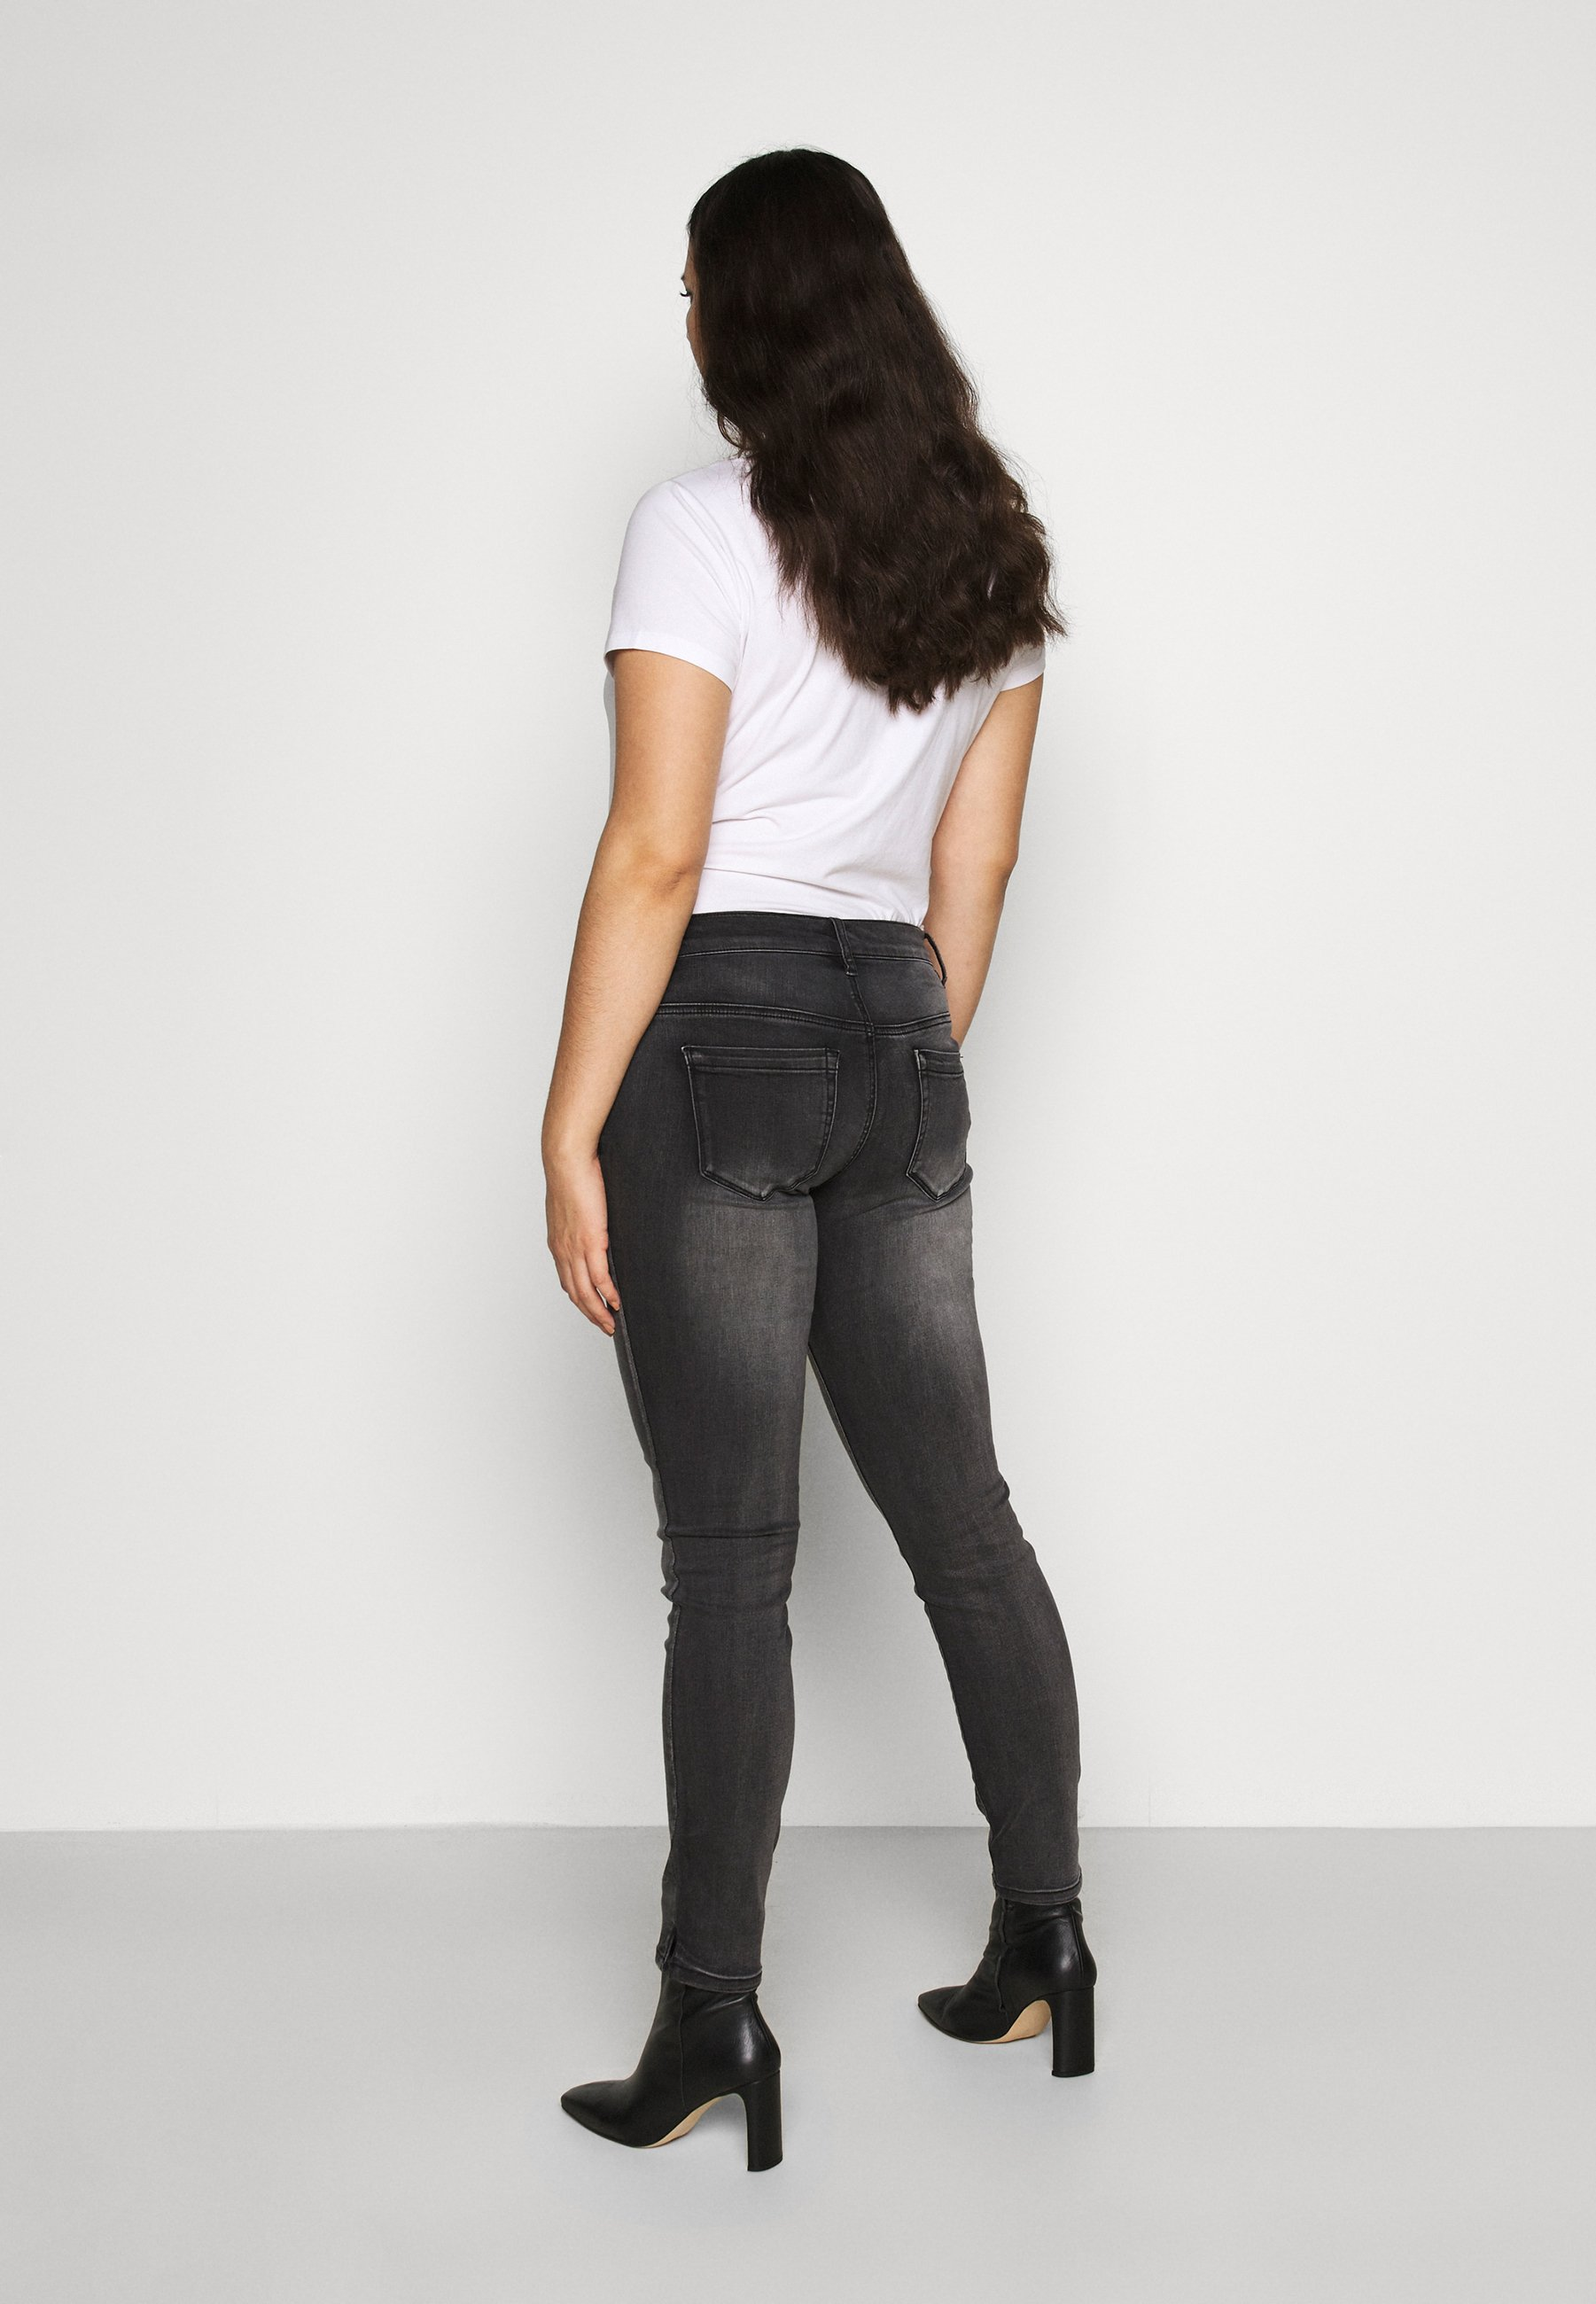 Zizzi LONG SANNA - Jeans Skinny Fit - dark grey denim - Women's Clothing kd2C4